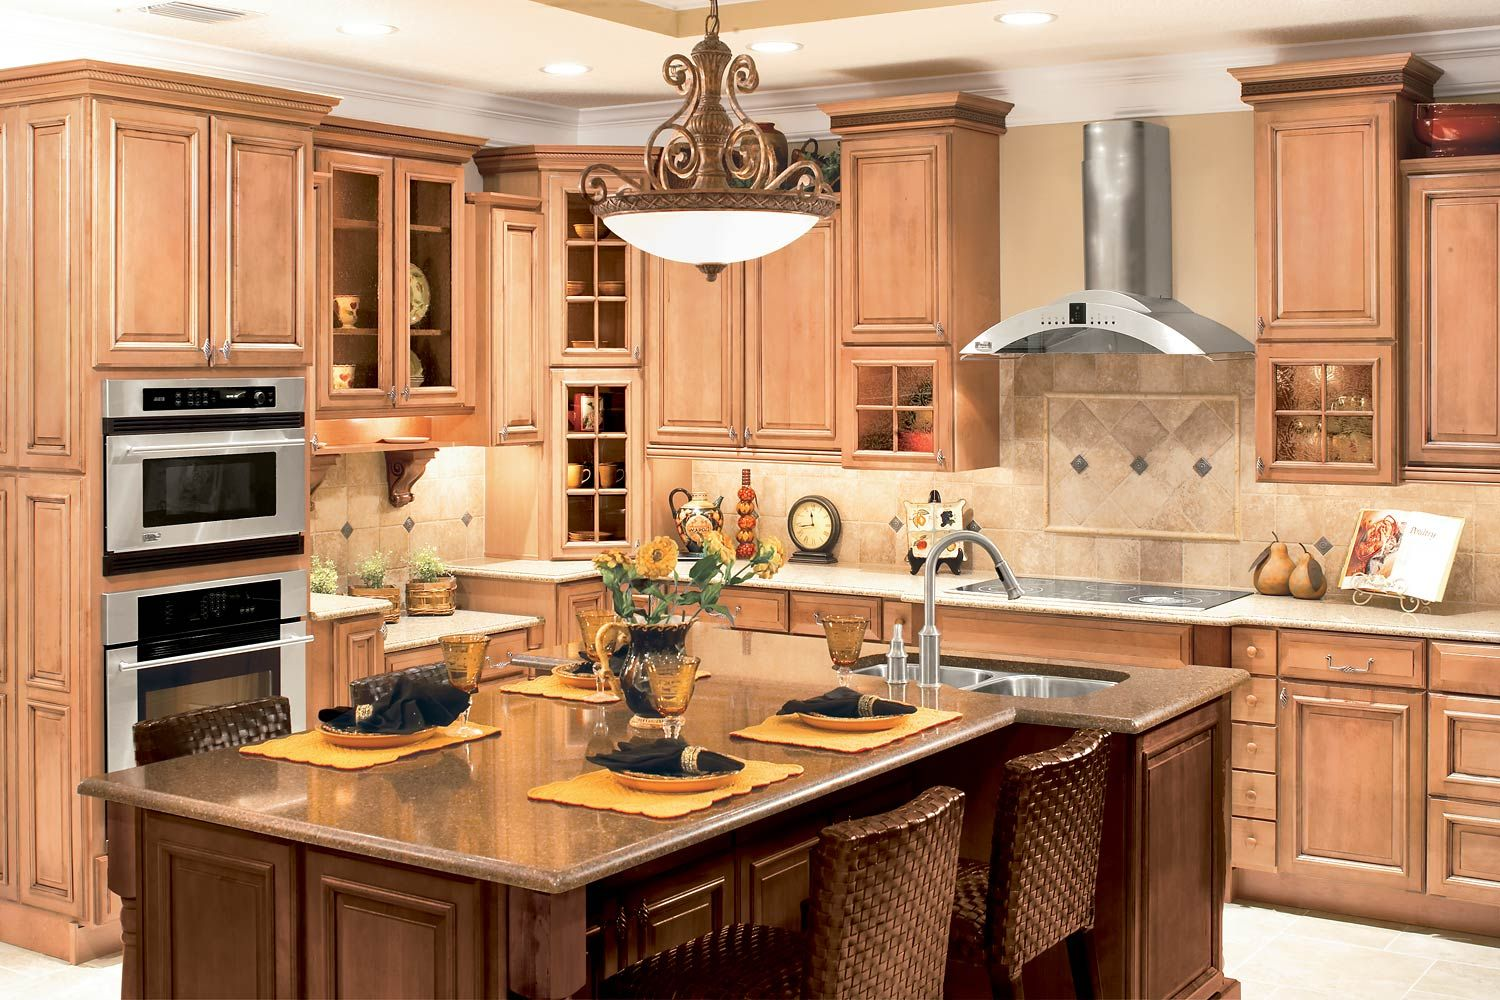 american classics oak kitchen cabinets   kitchen cabinets have many purposes  not only do they hold dishes appliances and f durango maple mocha glaze kitchen   timberlake cabinetry   our      rh   pinterest com